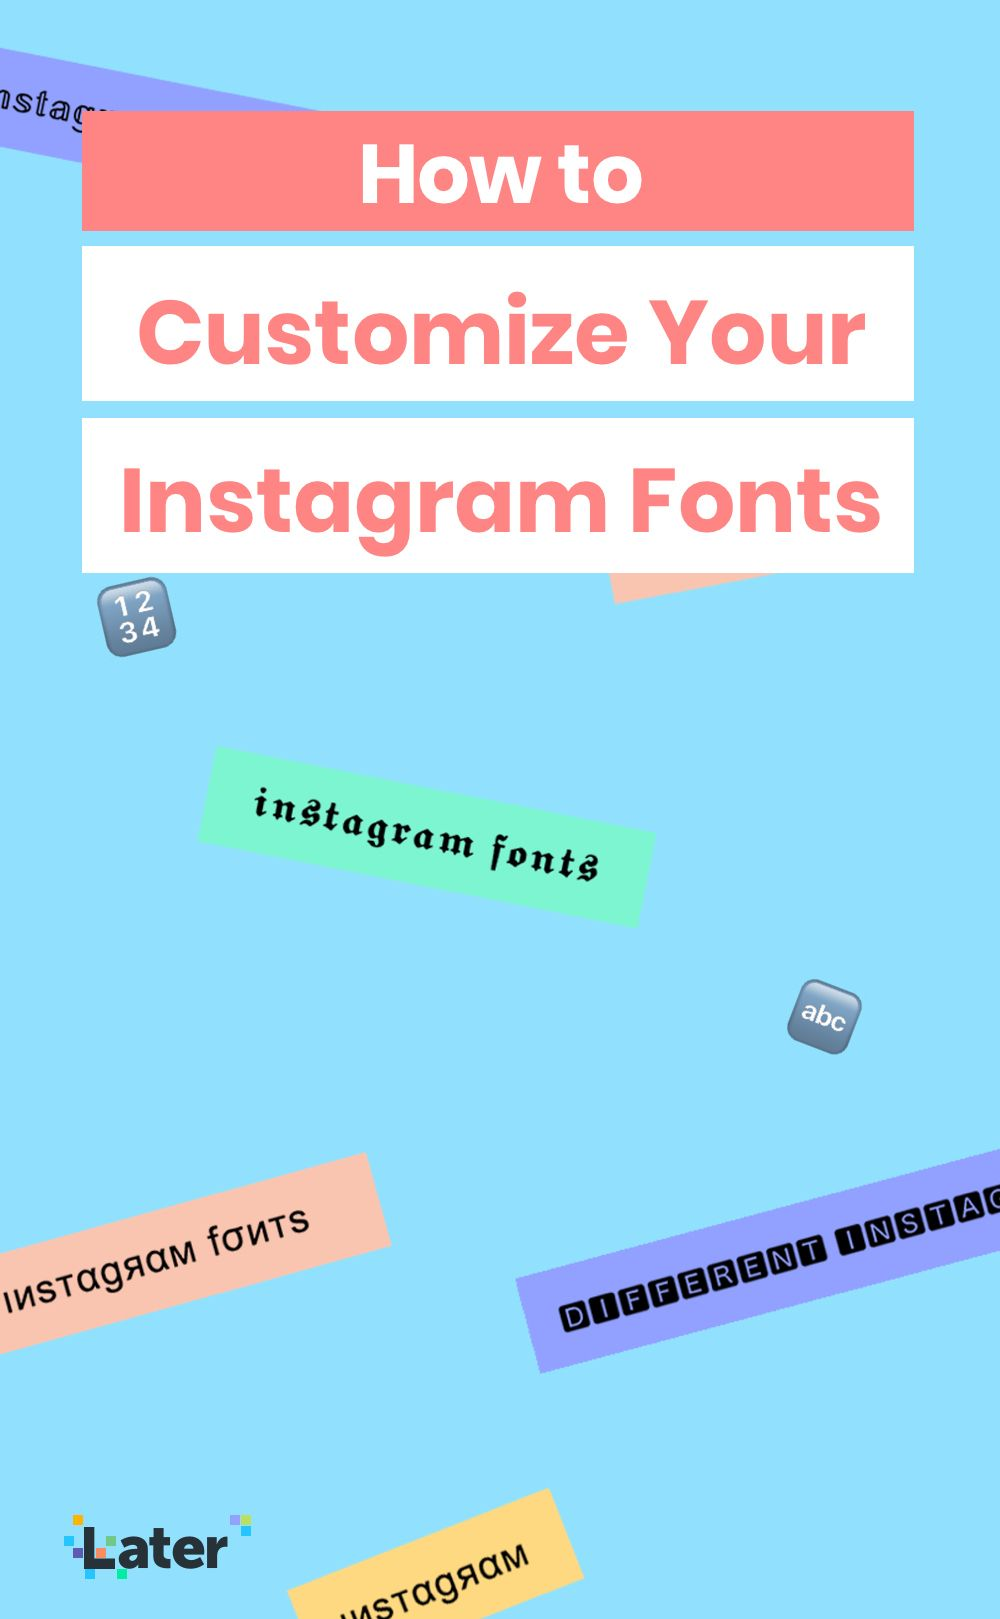 How To Find And Customize Instagram Fonts For Your Profile Later Blog Instagram Font Instagram Account Ideas Instagram